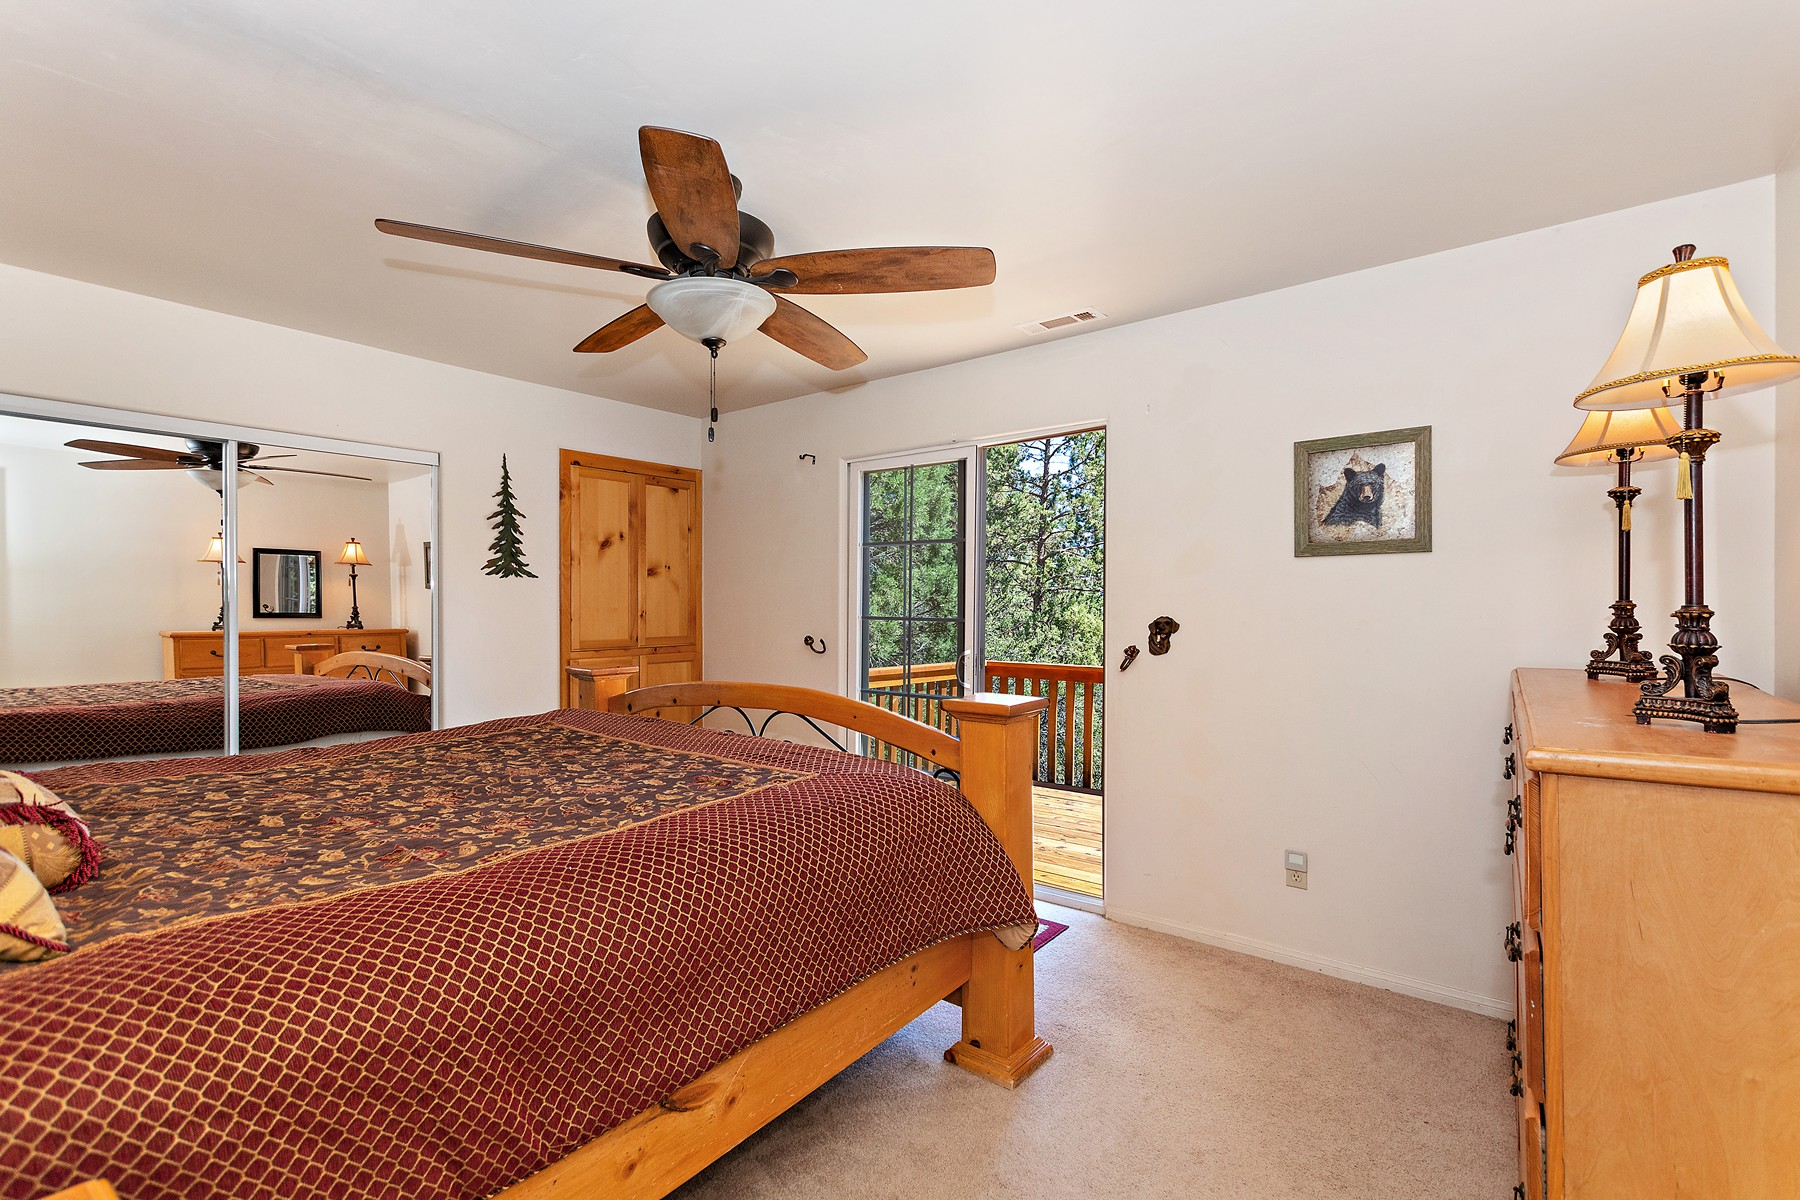 Additional photo for property listing at 705 Pine Lane, Sugarloaf, California, 92386 705 Pine Lane Sugarloaf, California 92386 United States